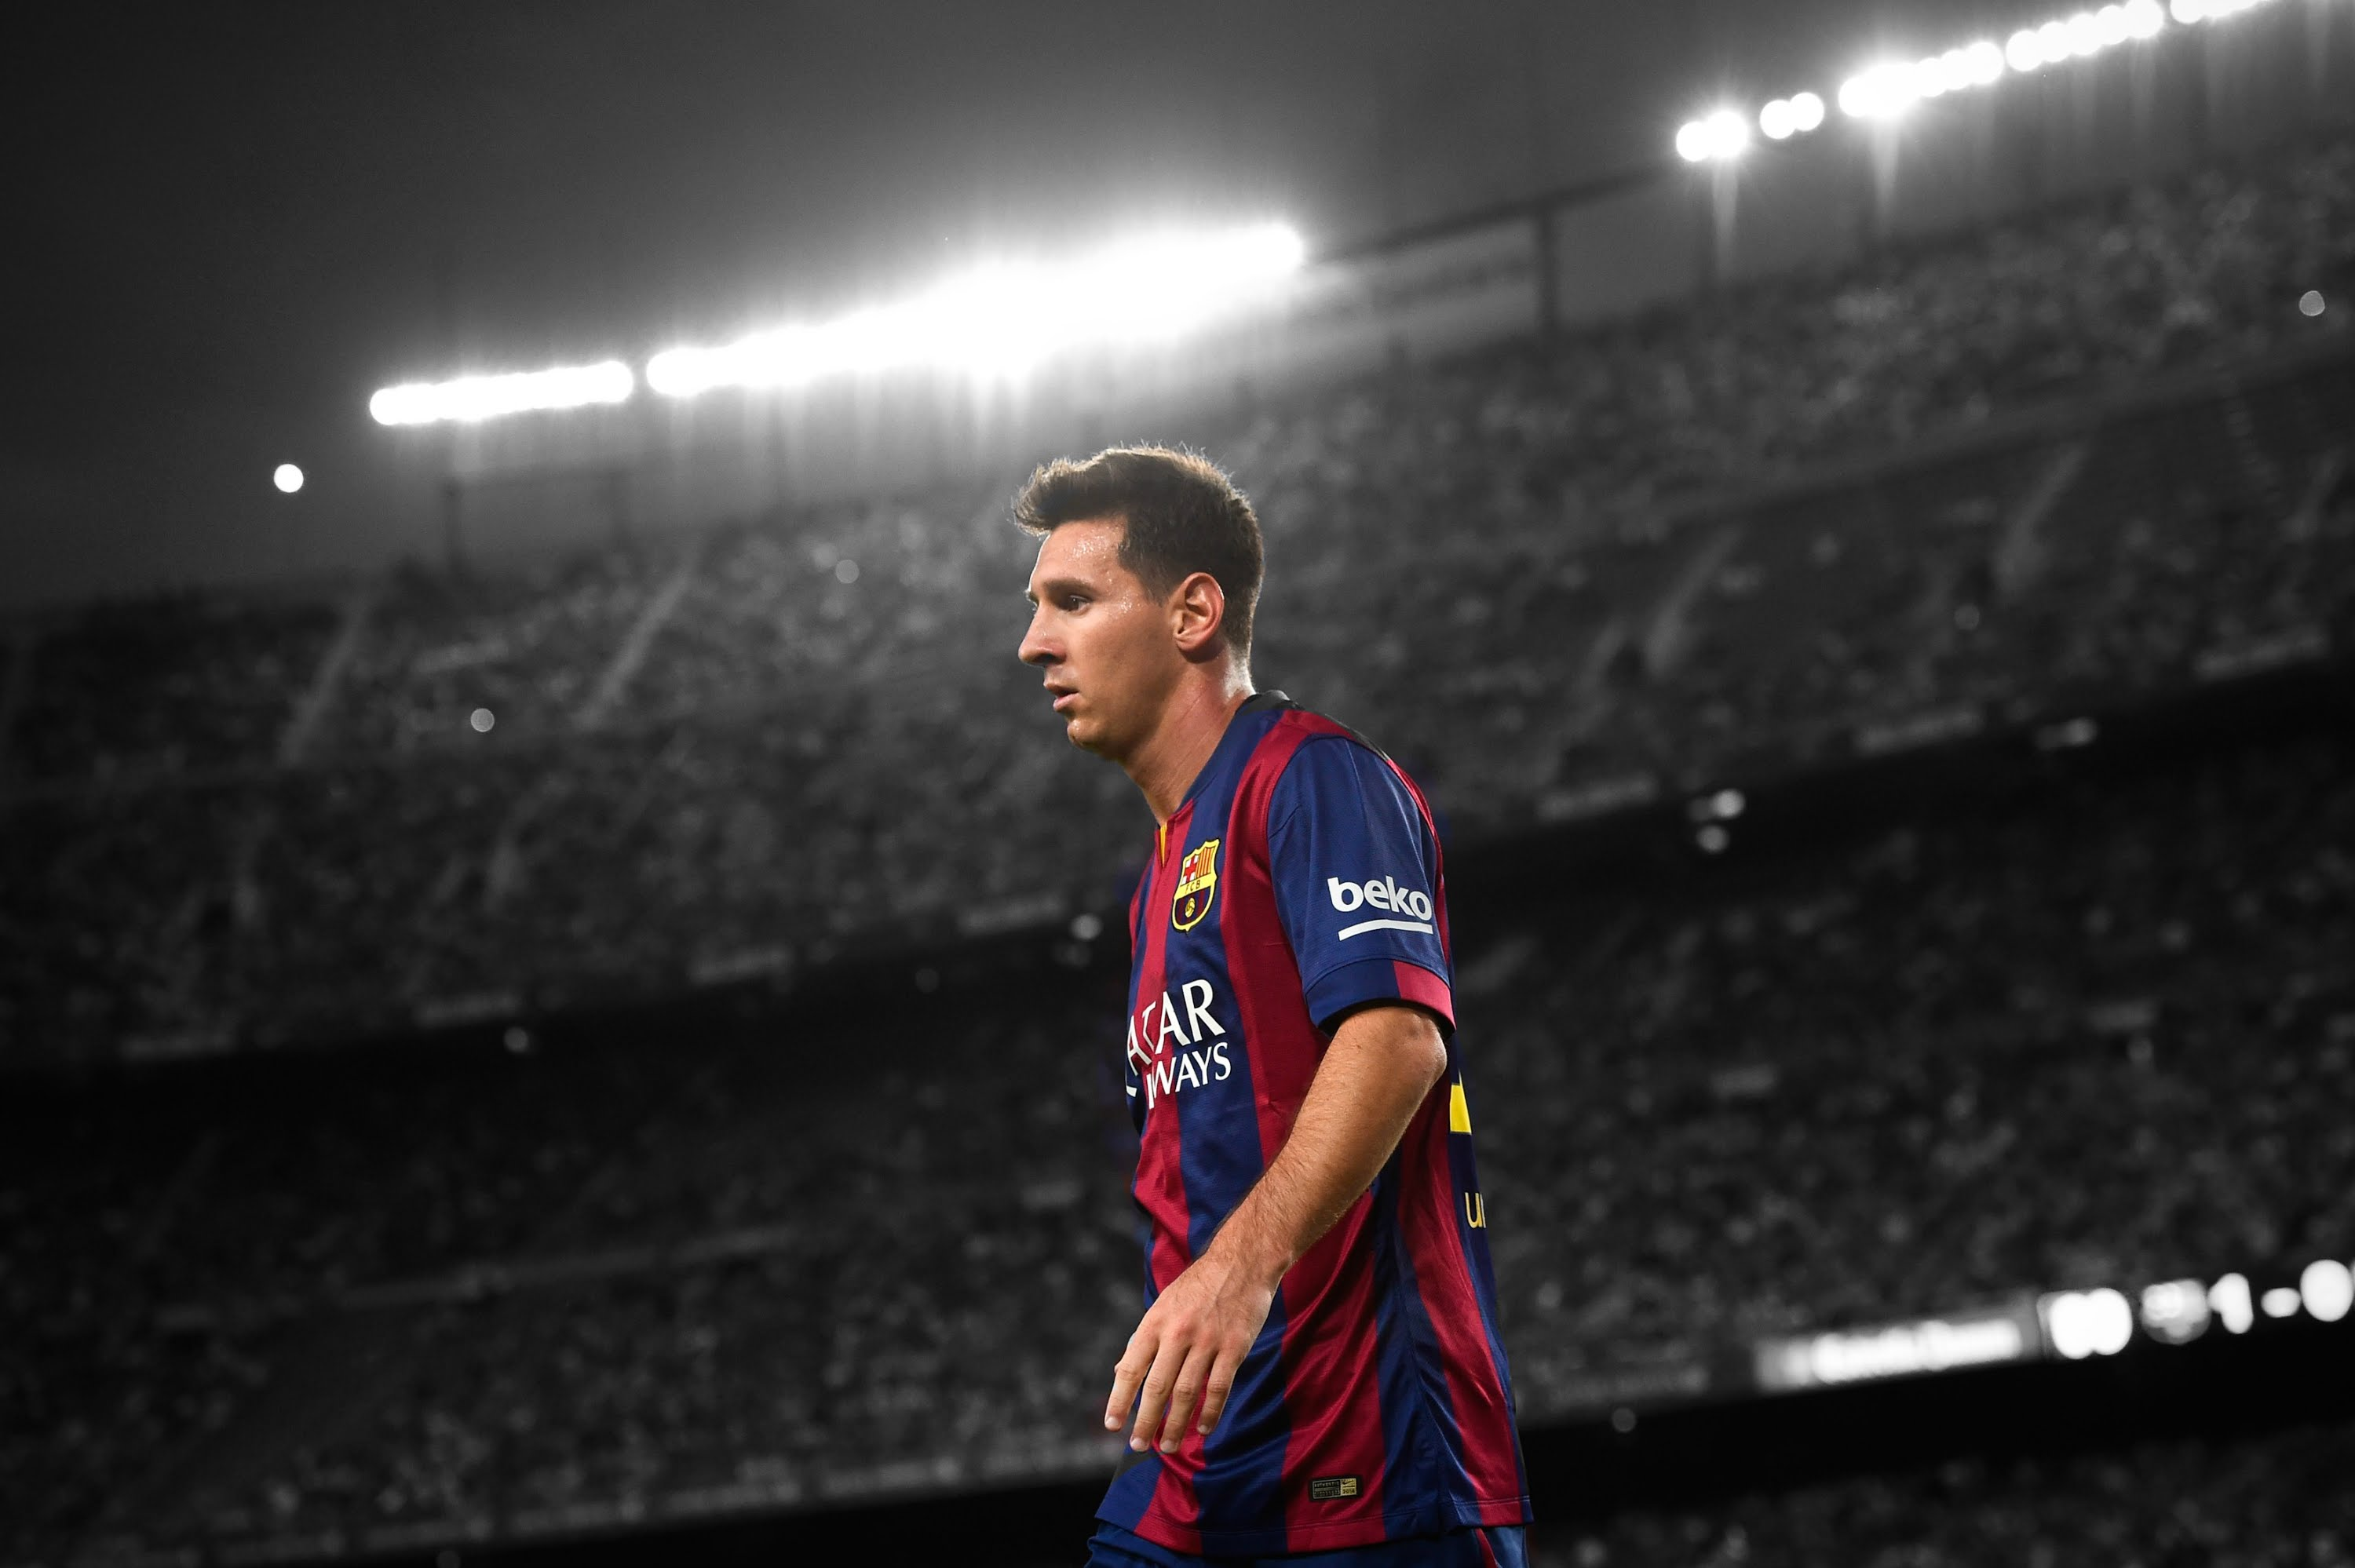 Lionel Messi Wallpapers HD download Wallpapers Backgrounds 3000x1998